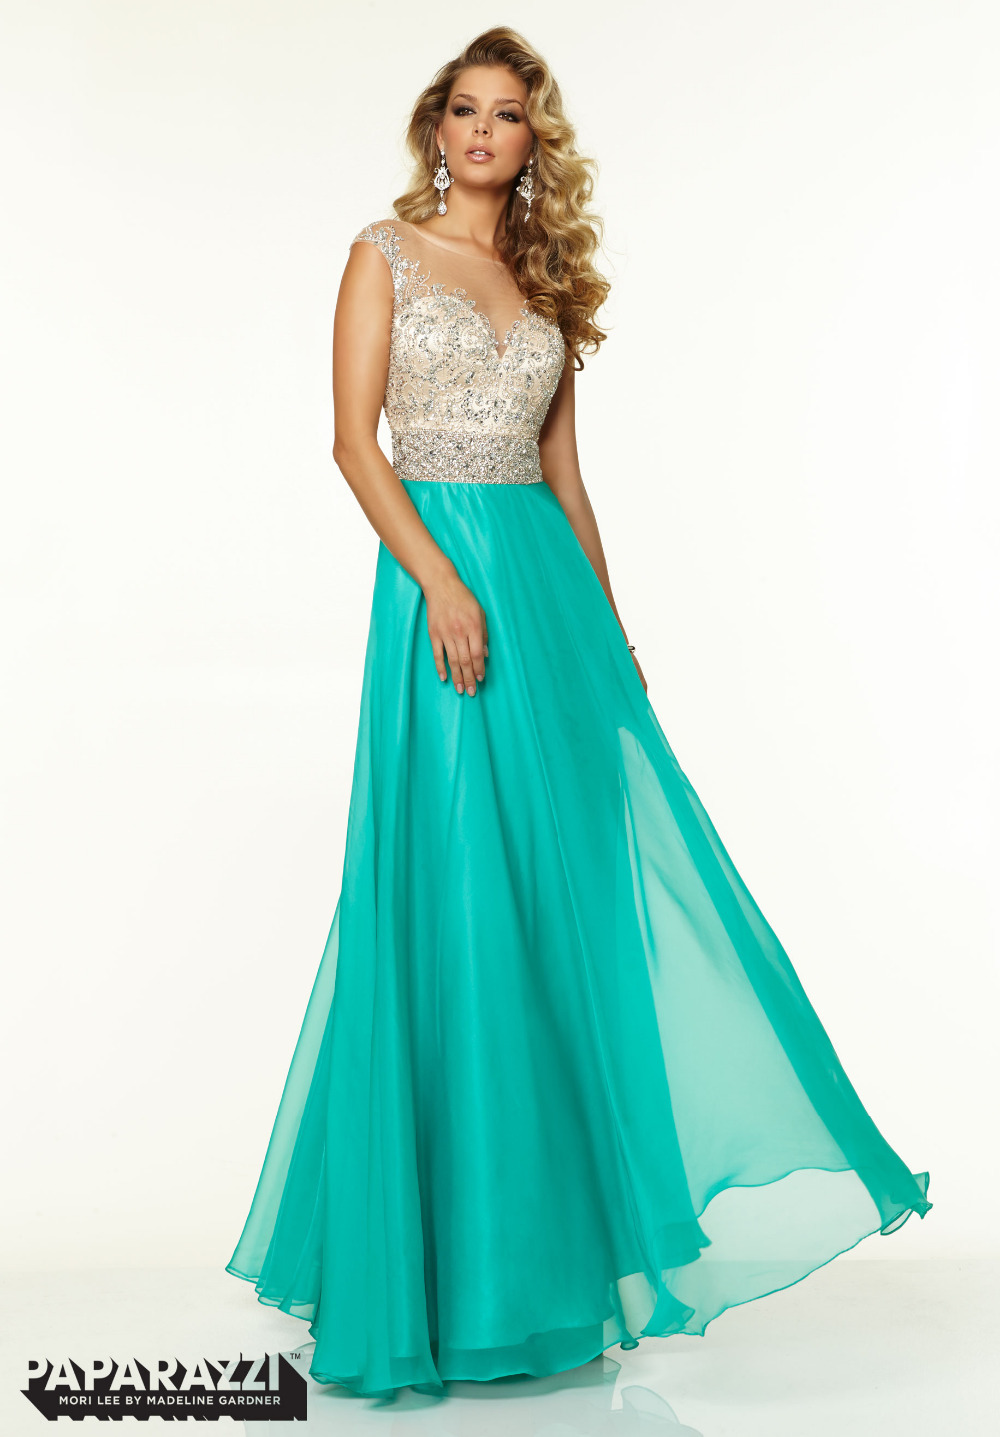 Perfect Prom Dress Stores In Vancouver Bc Mold - Wedding Dress Ideas ...